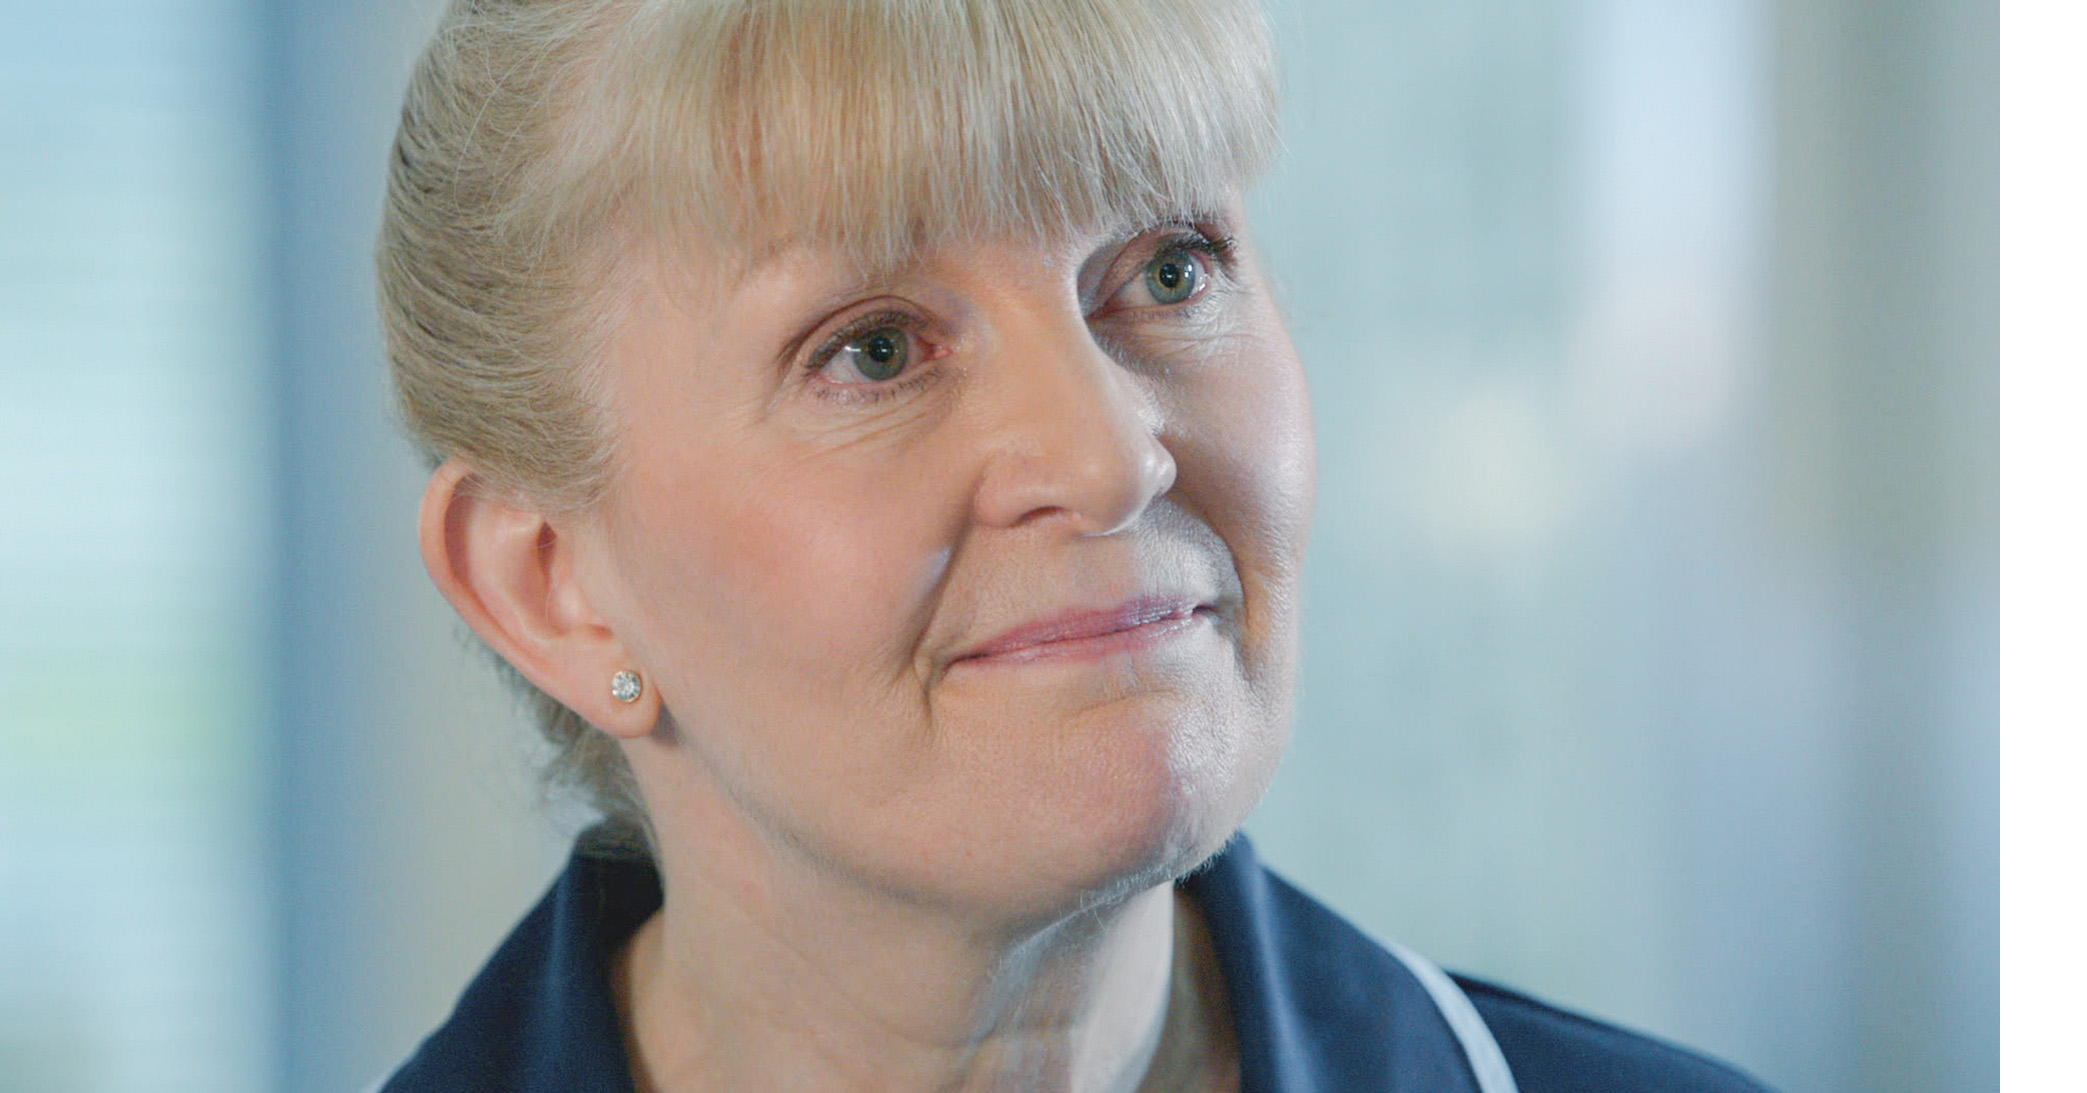 Cathy Shipton returns to her iconic role of Duffy in Casualty